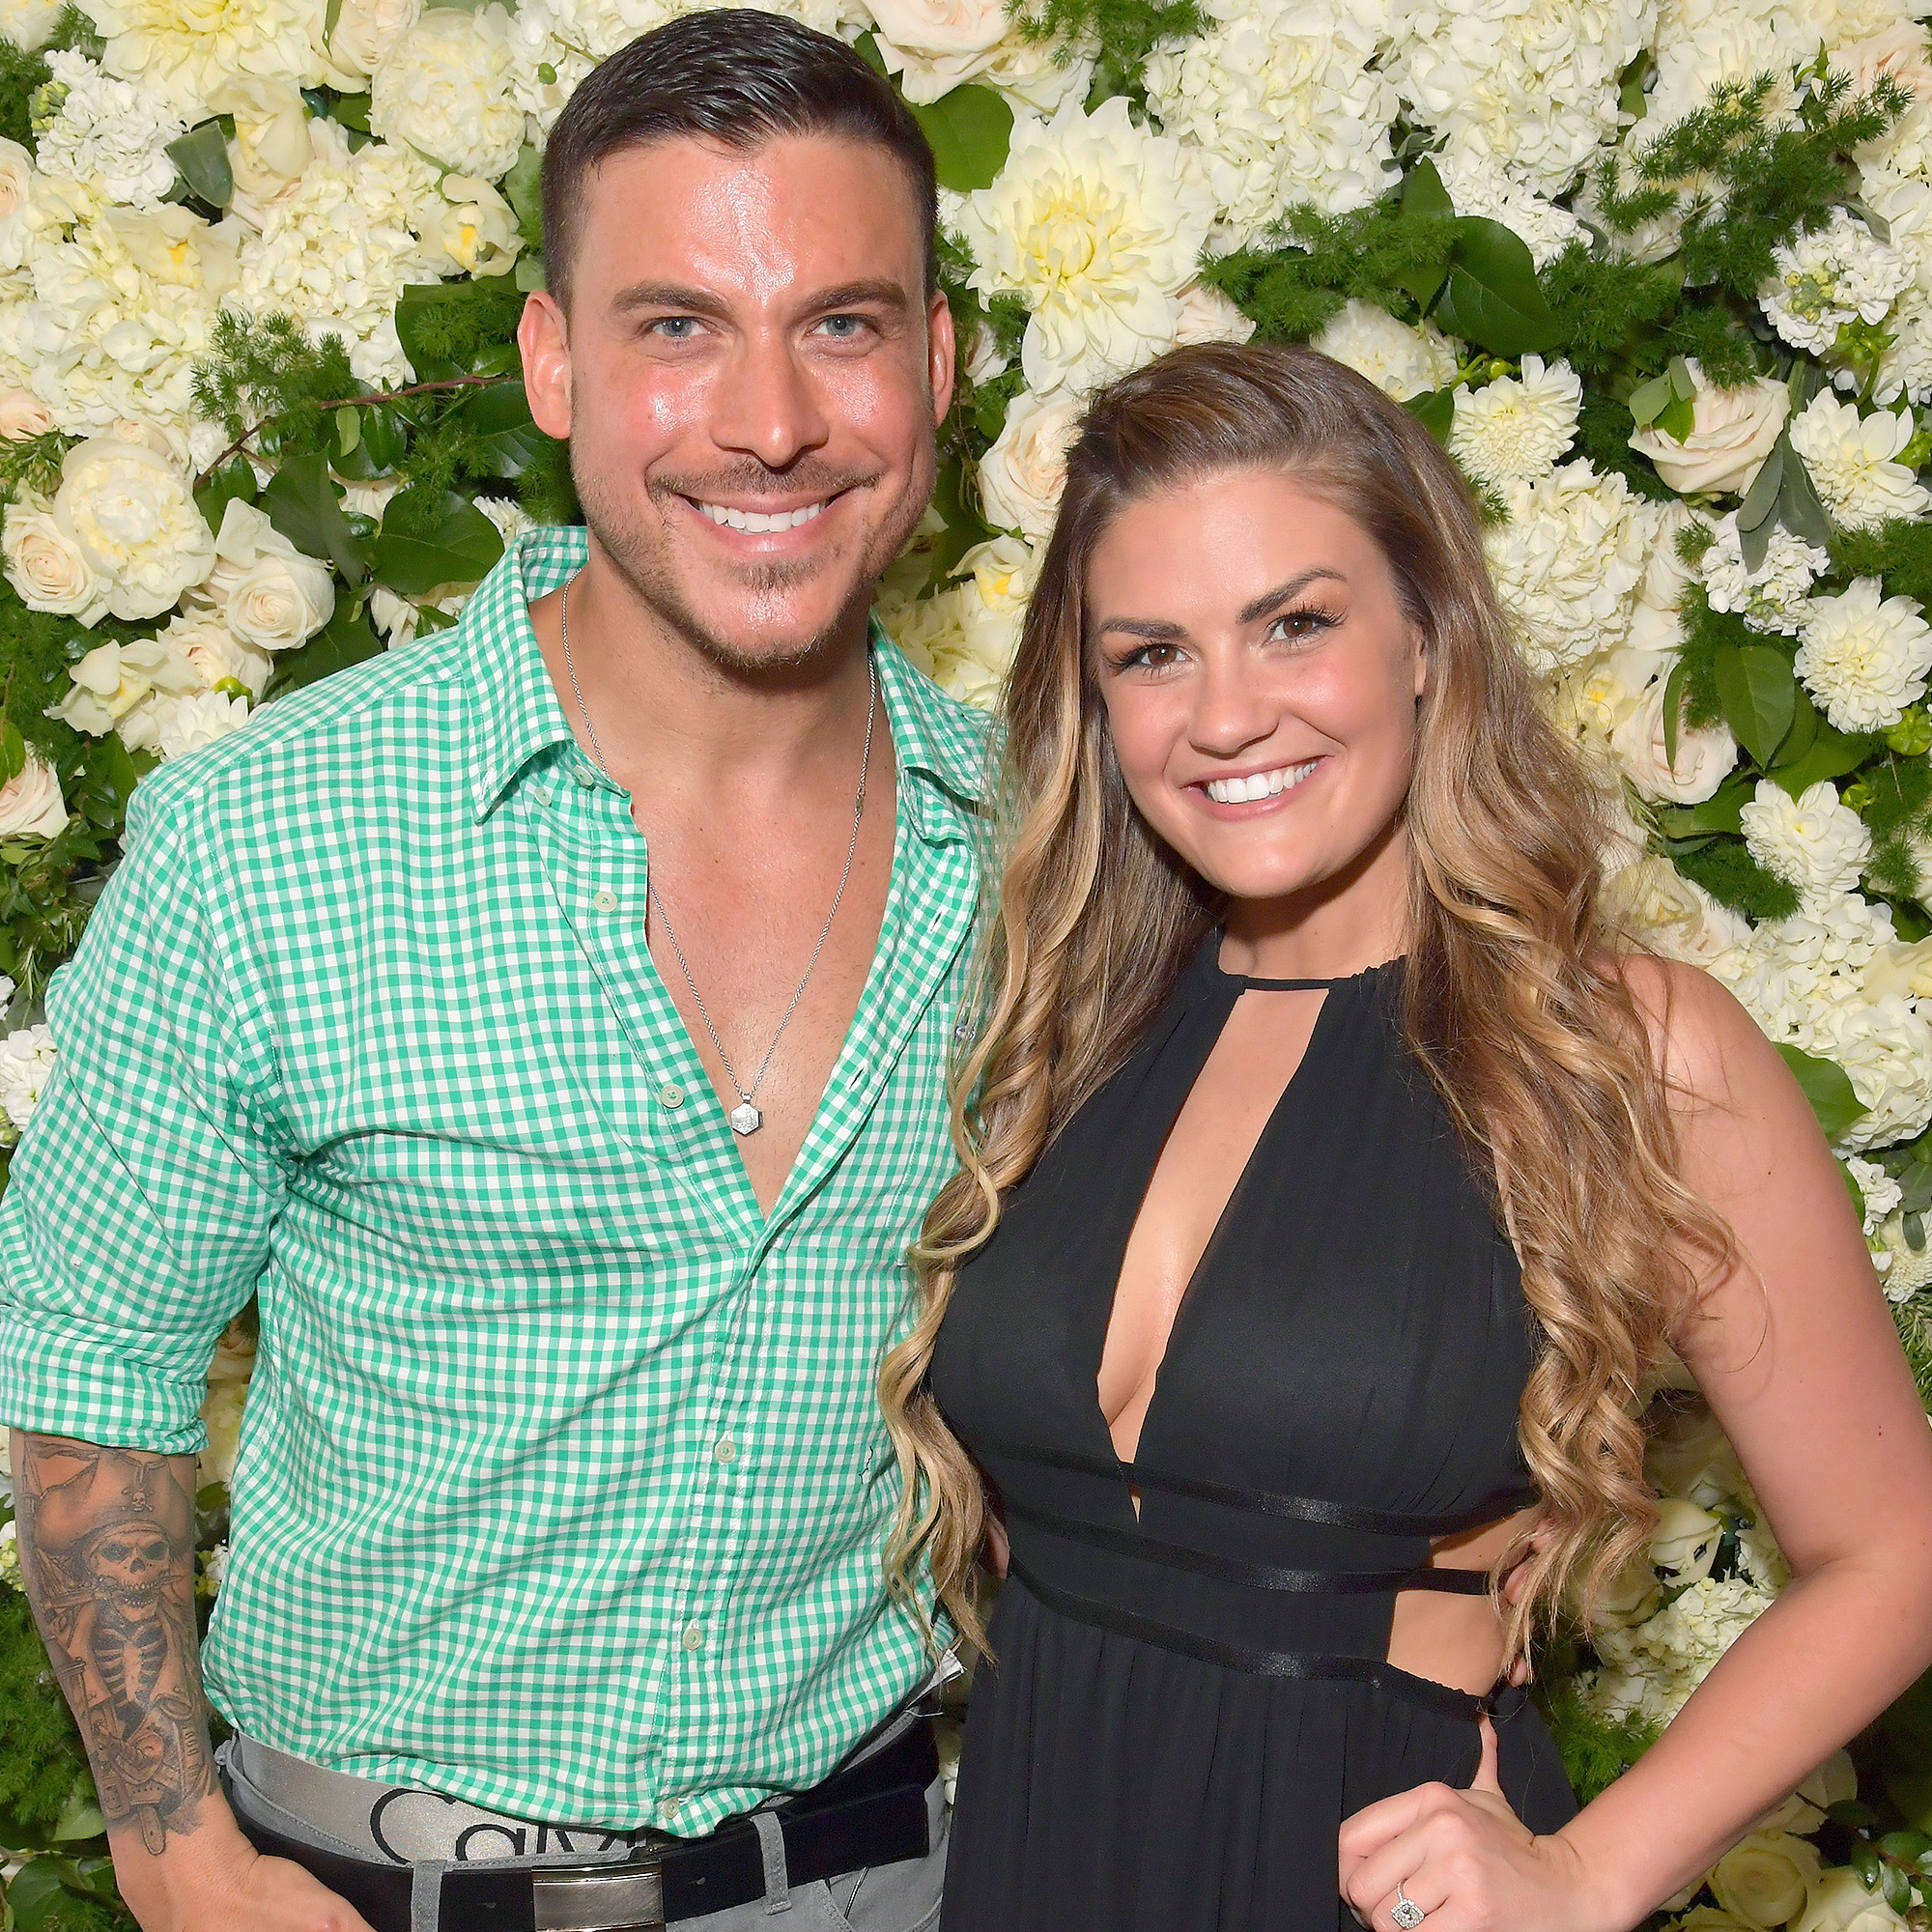 jax brittany celebrate engagement in mexico with pump rules cast